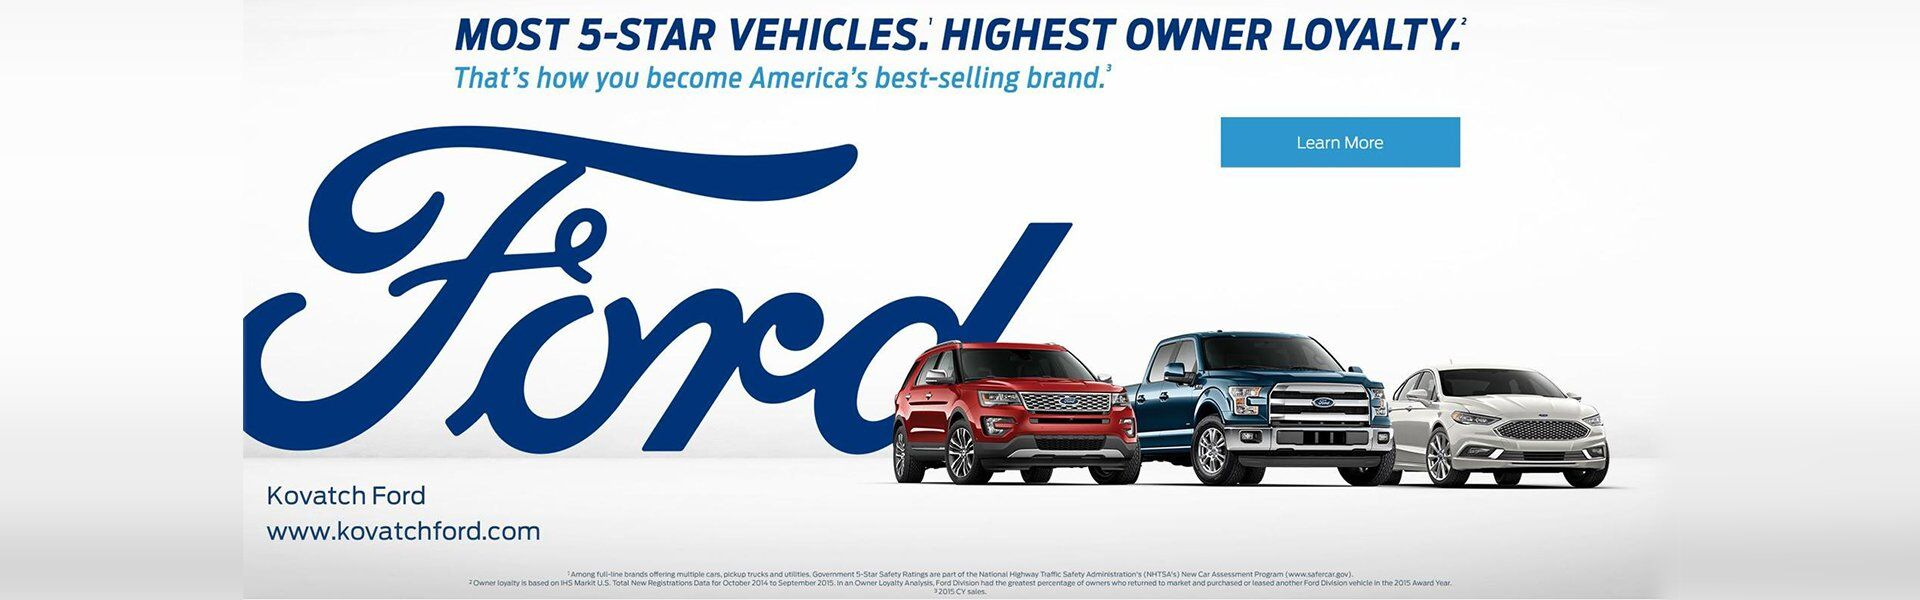 Kovatch Ford Reasons to buy